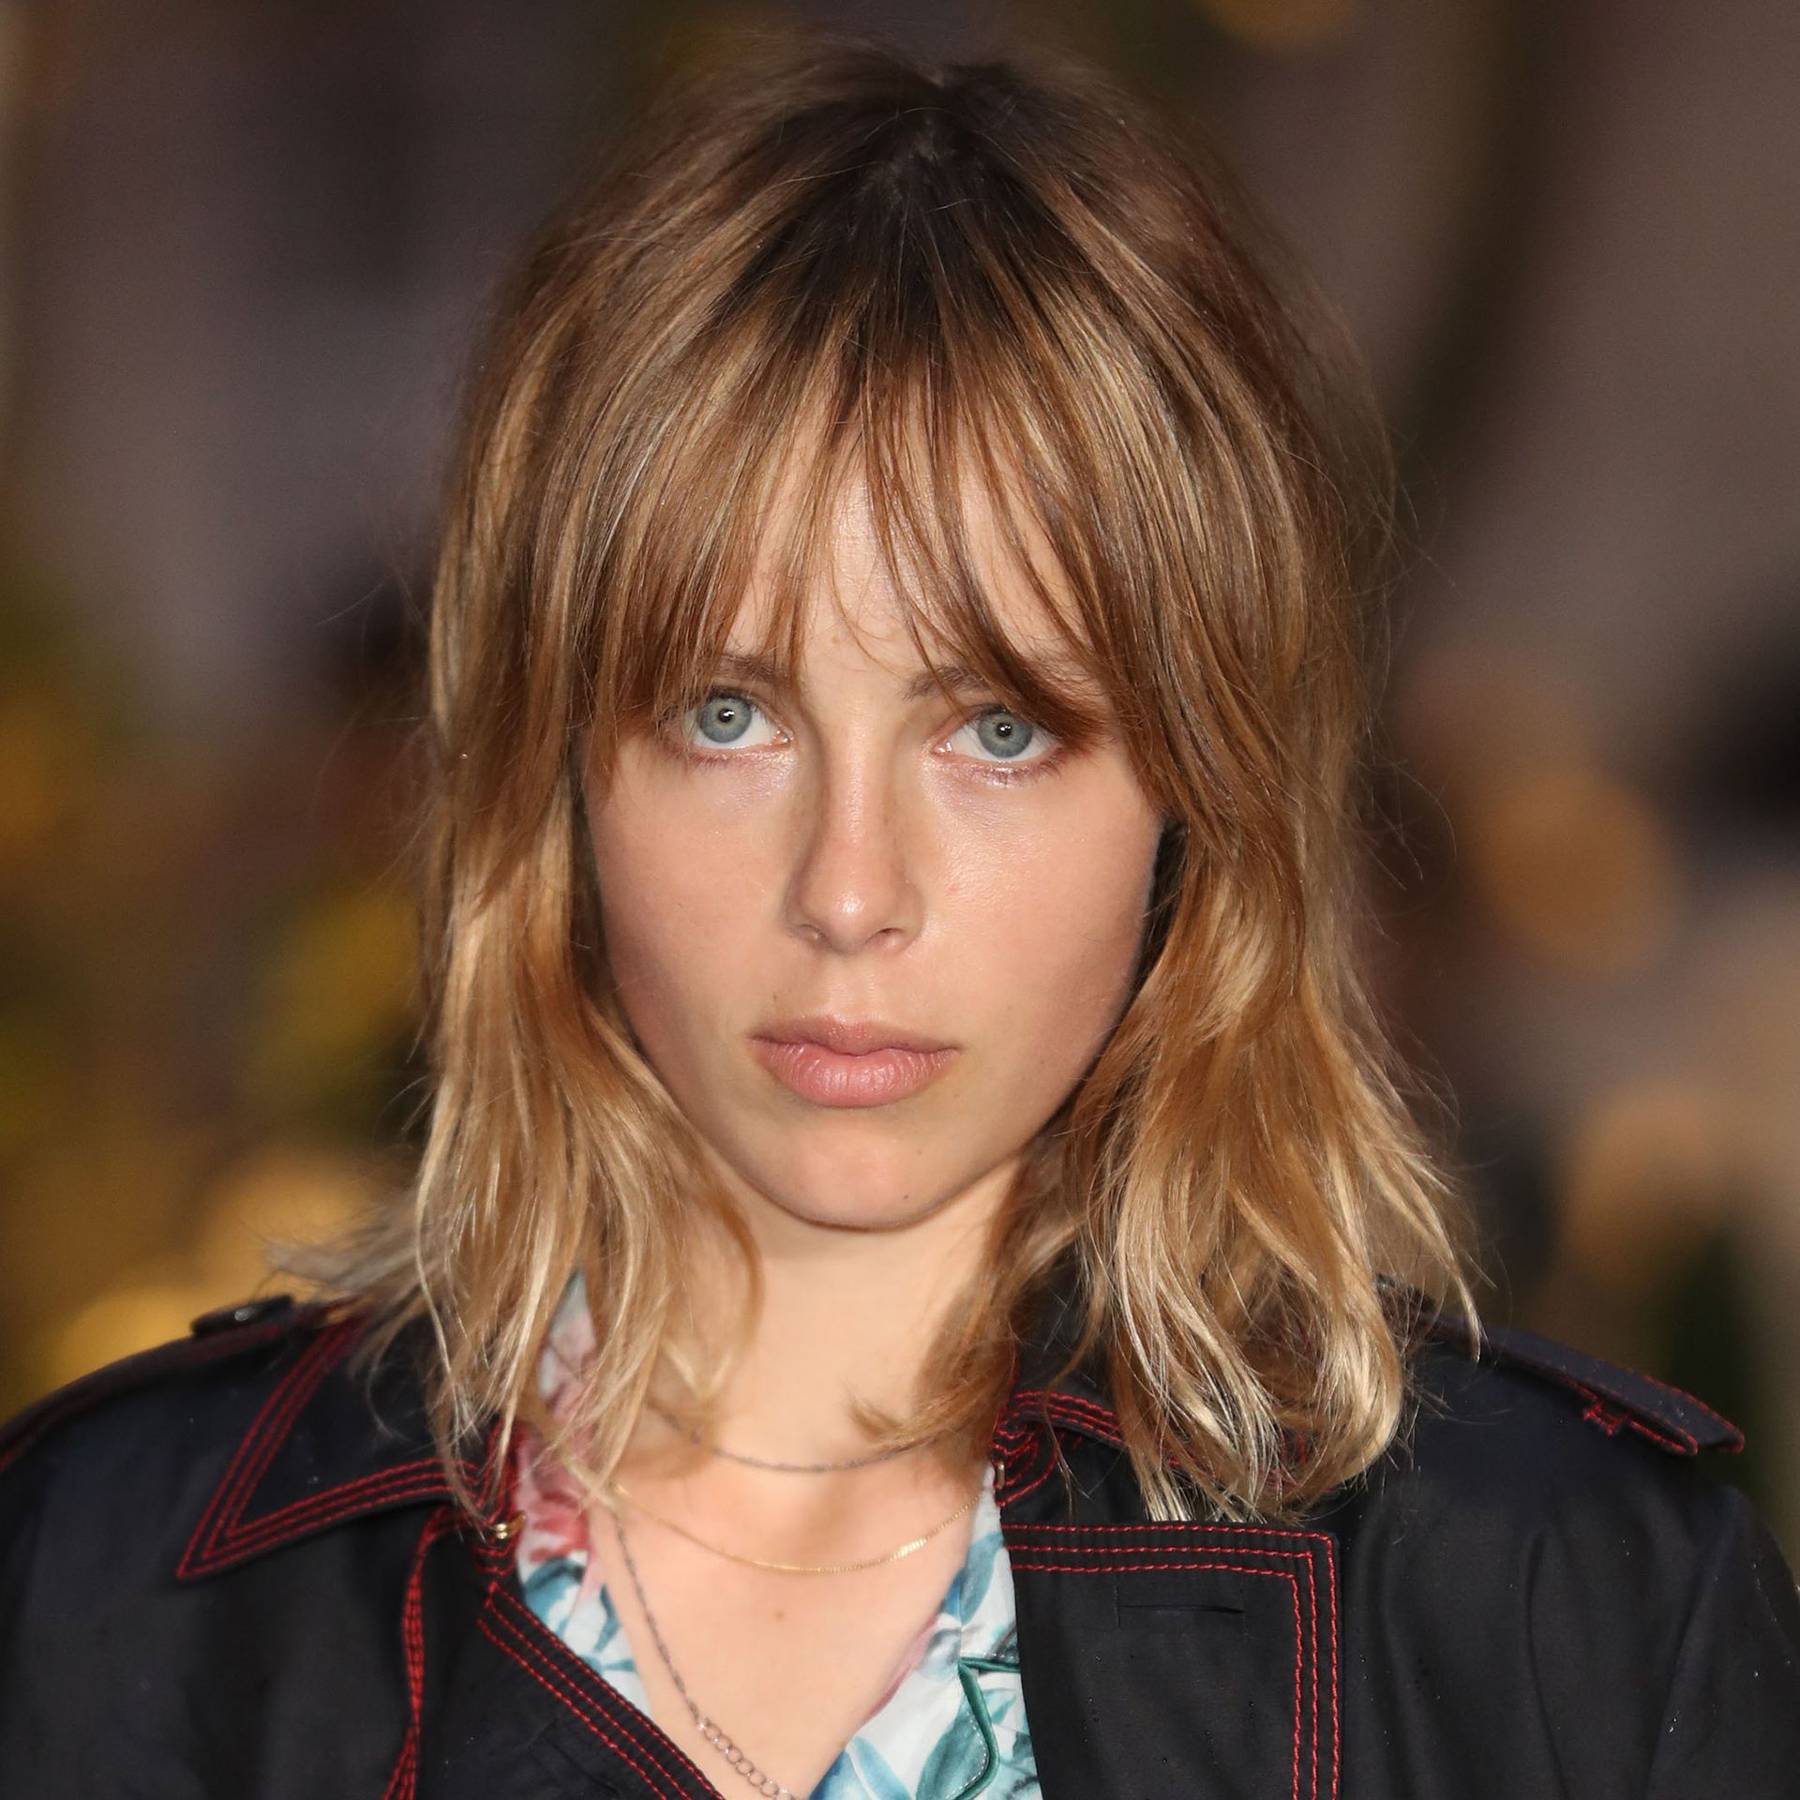 Fotos Edie Campbell nudes (39 photos), Topless, Sideboobs, Instagram, panties 2017